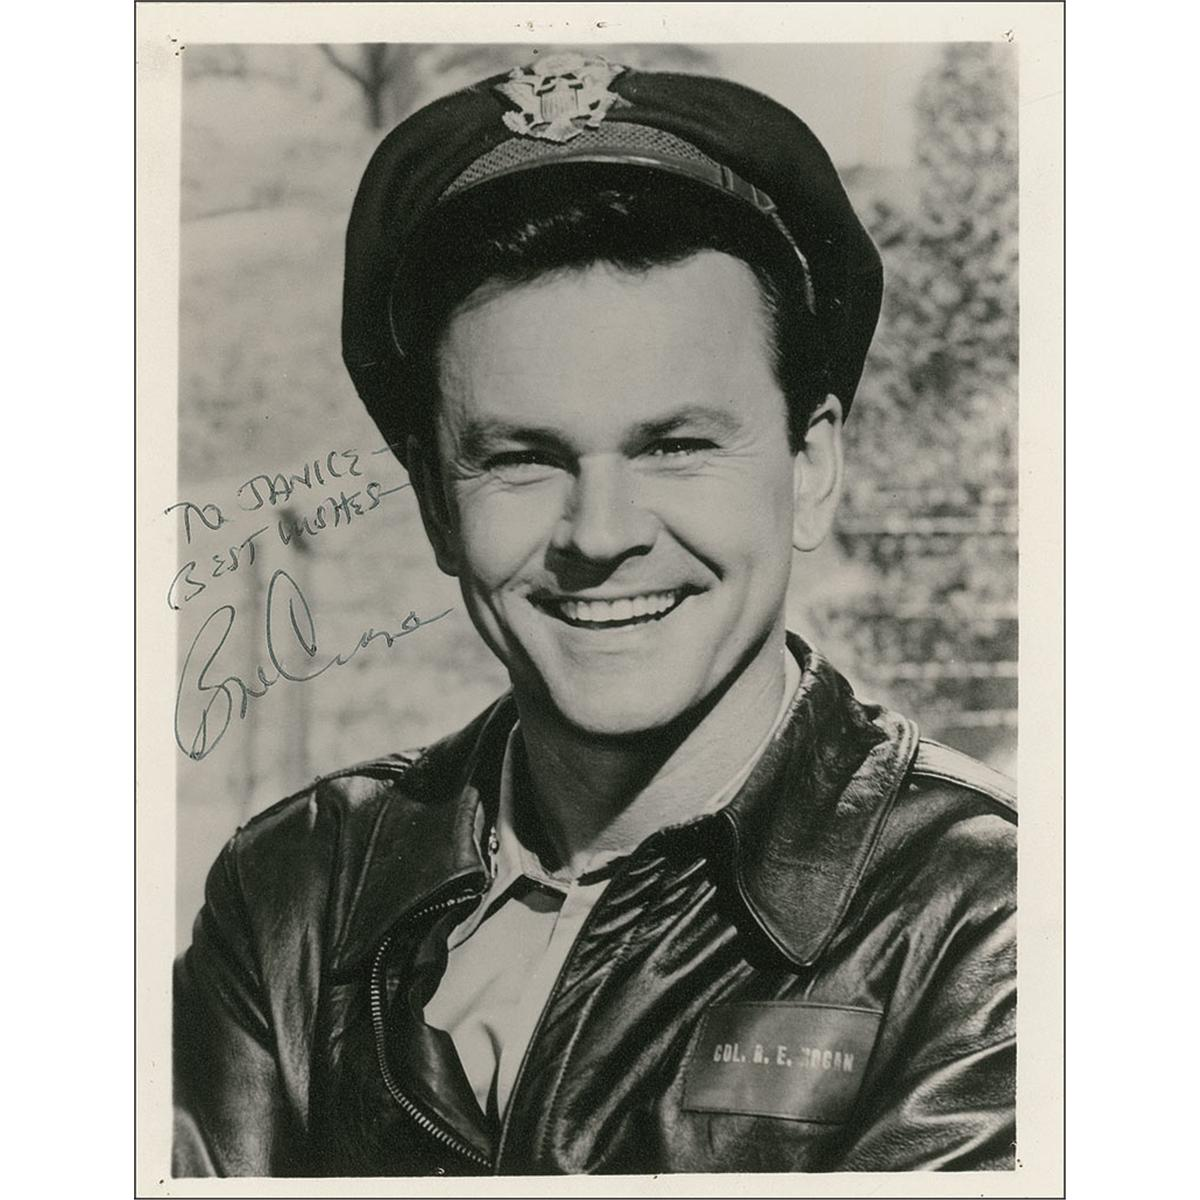 bob crane net worth